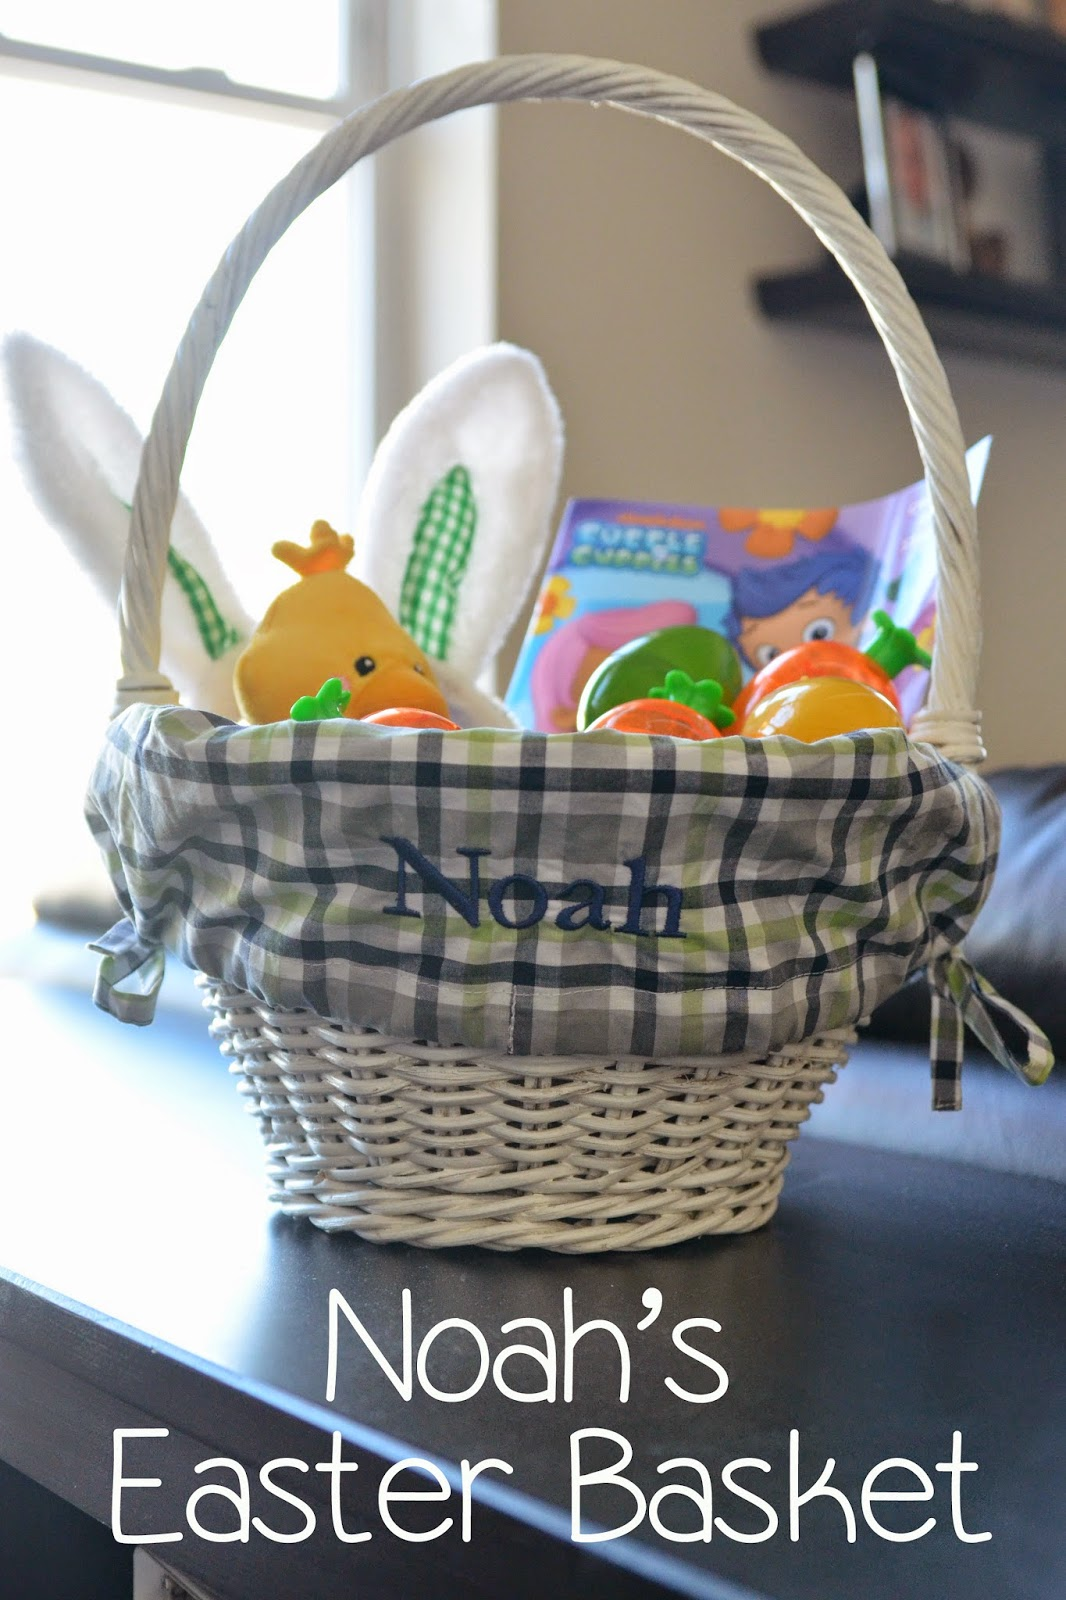 The adventure starts here noahs easter basket both sets of grandparents got noah easter baskets filled with goodies since noah was only 4 12 months old he was limited to stuffed animals and toys negle Gallery